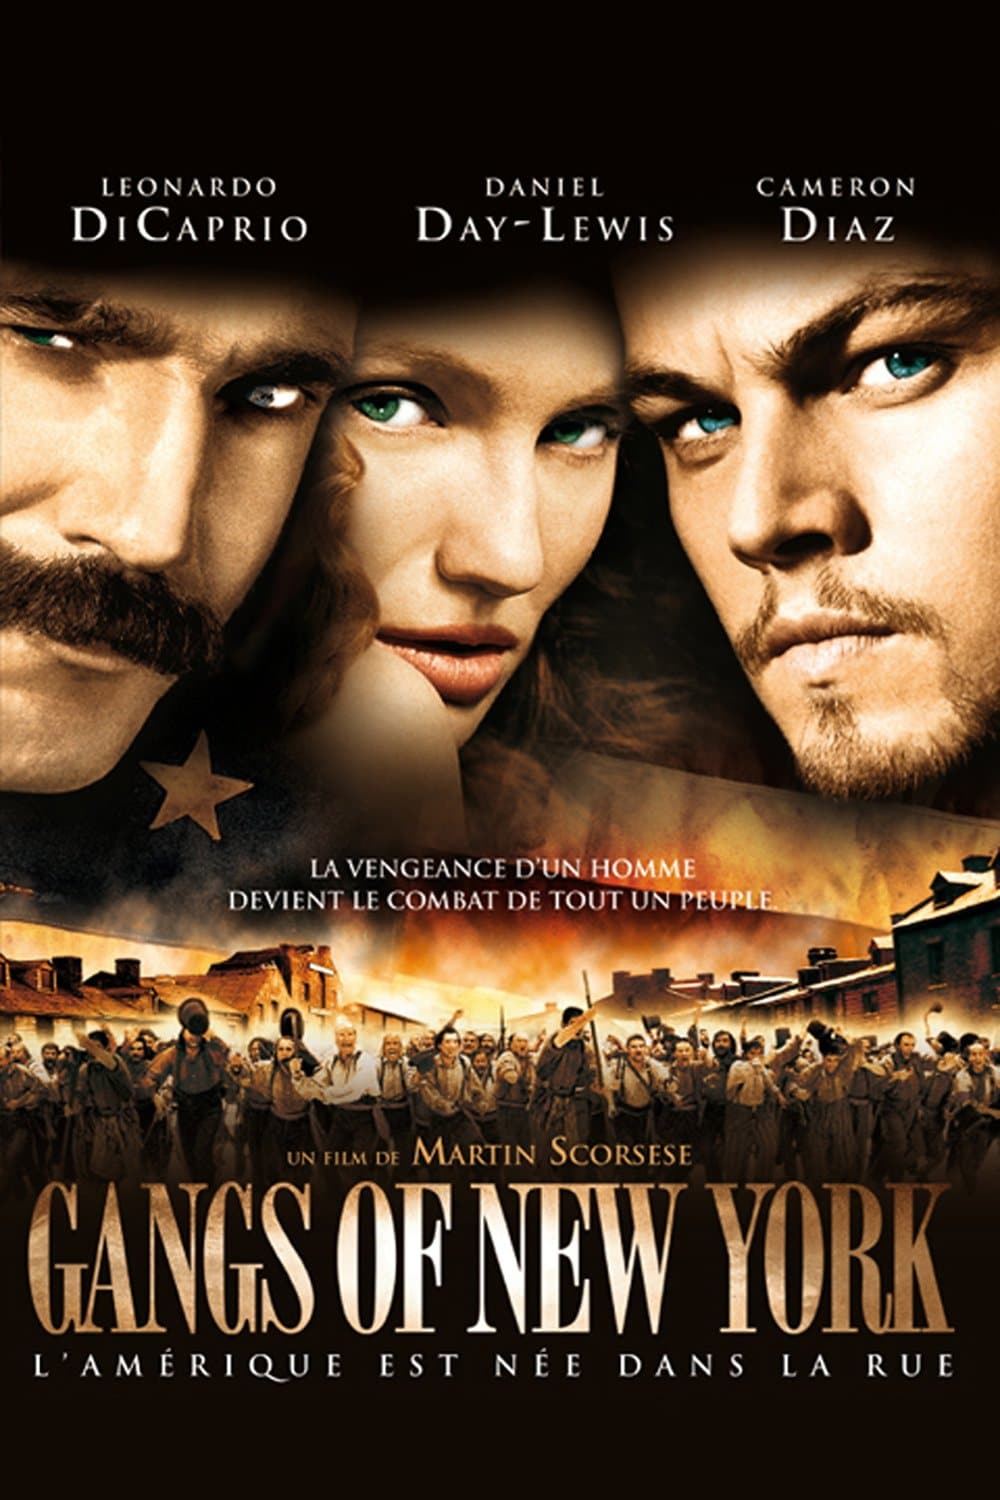 Regarder Gangs of New York en streaming gratuit